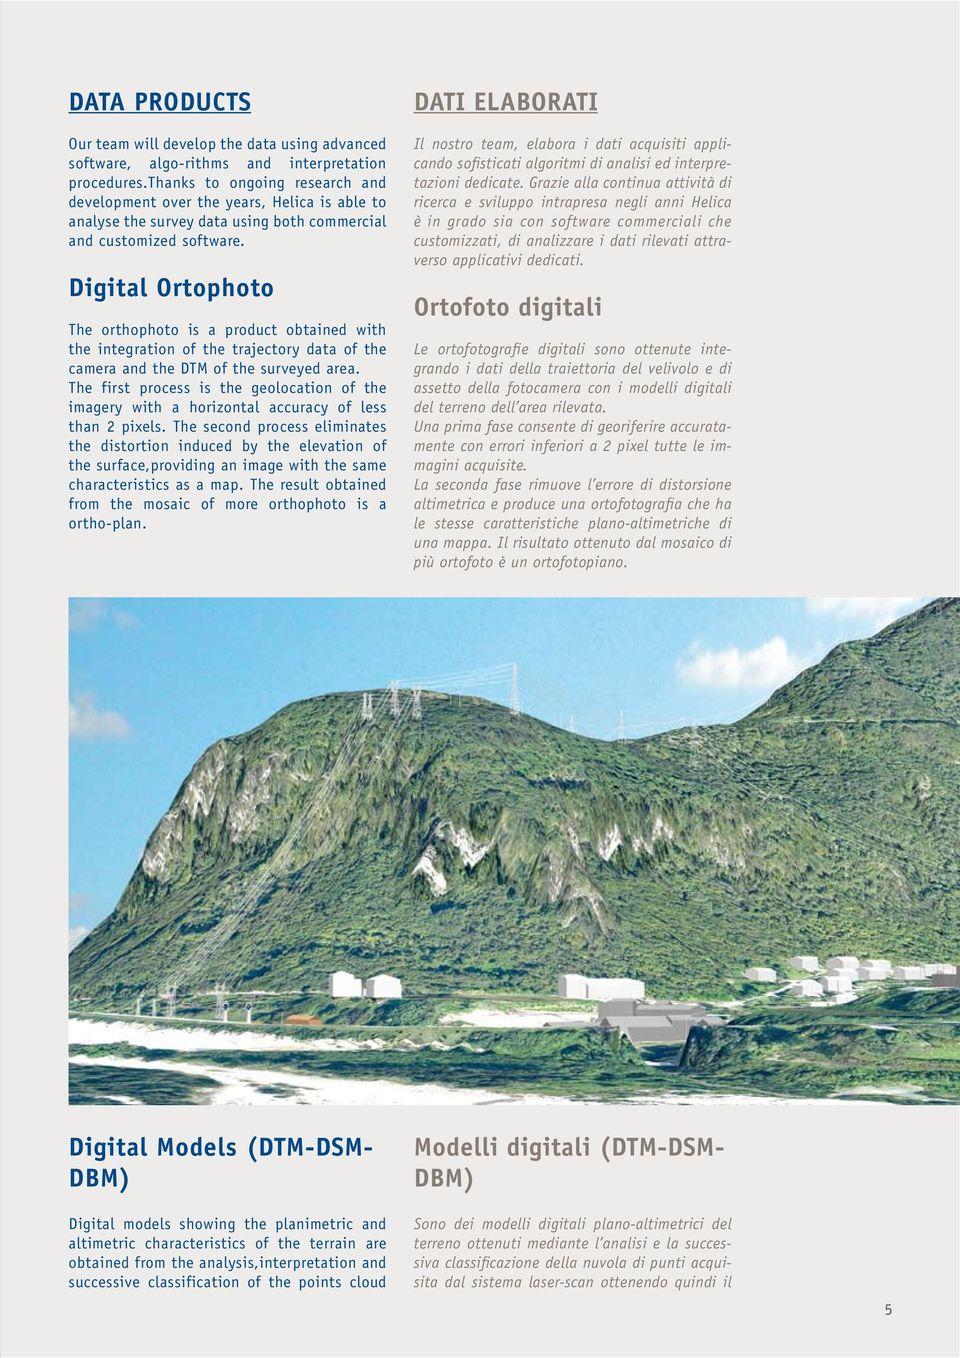 Digital Ortophoto The orthophoto is a product obtained with the integration of the trajectory data of the camera and the DTM of the surveyed area.